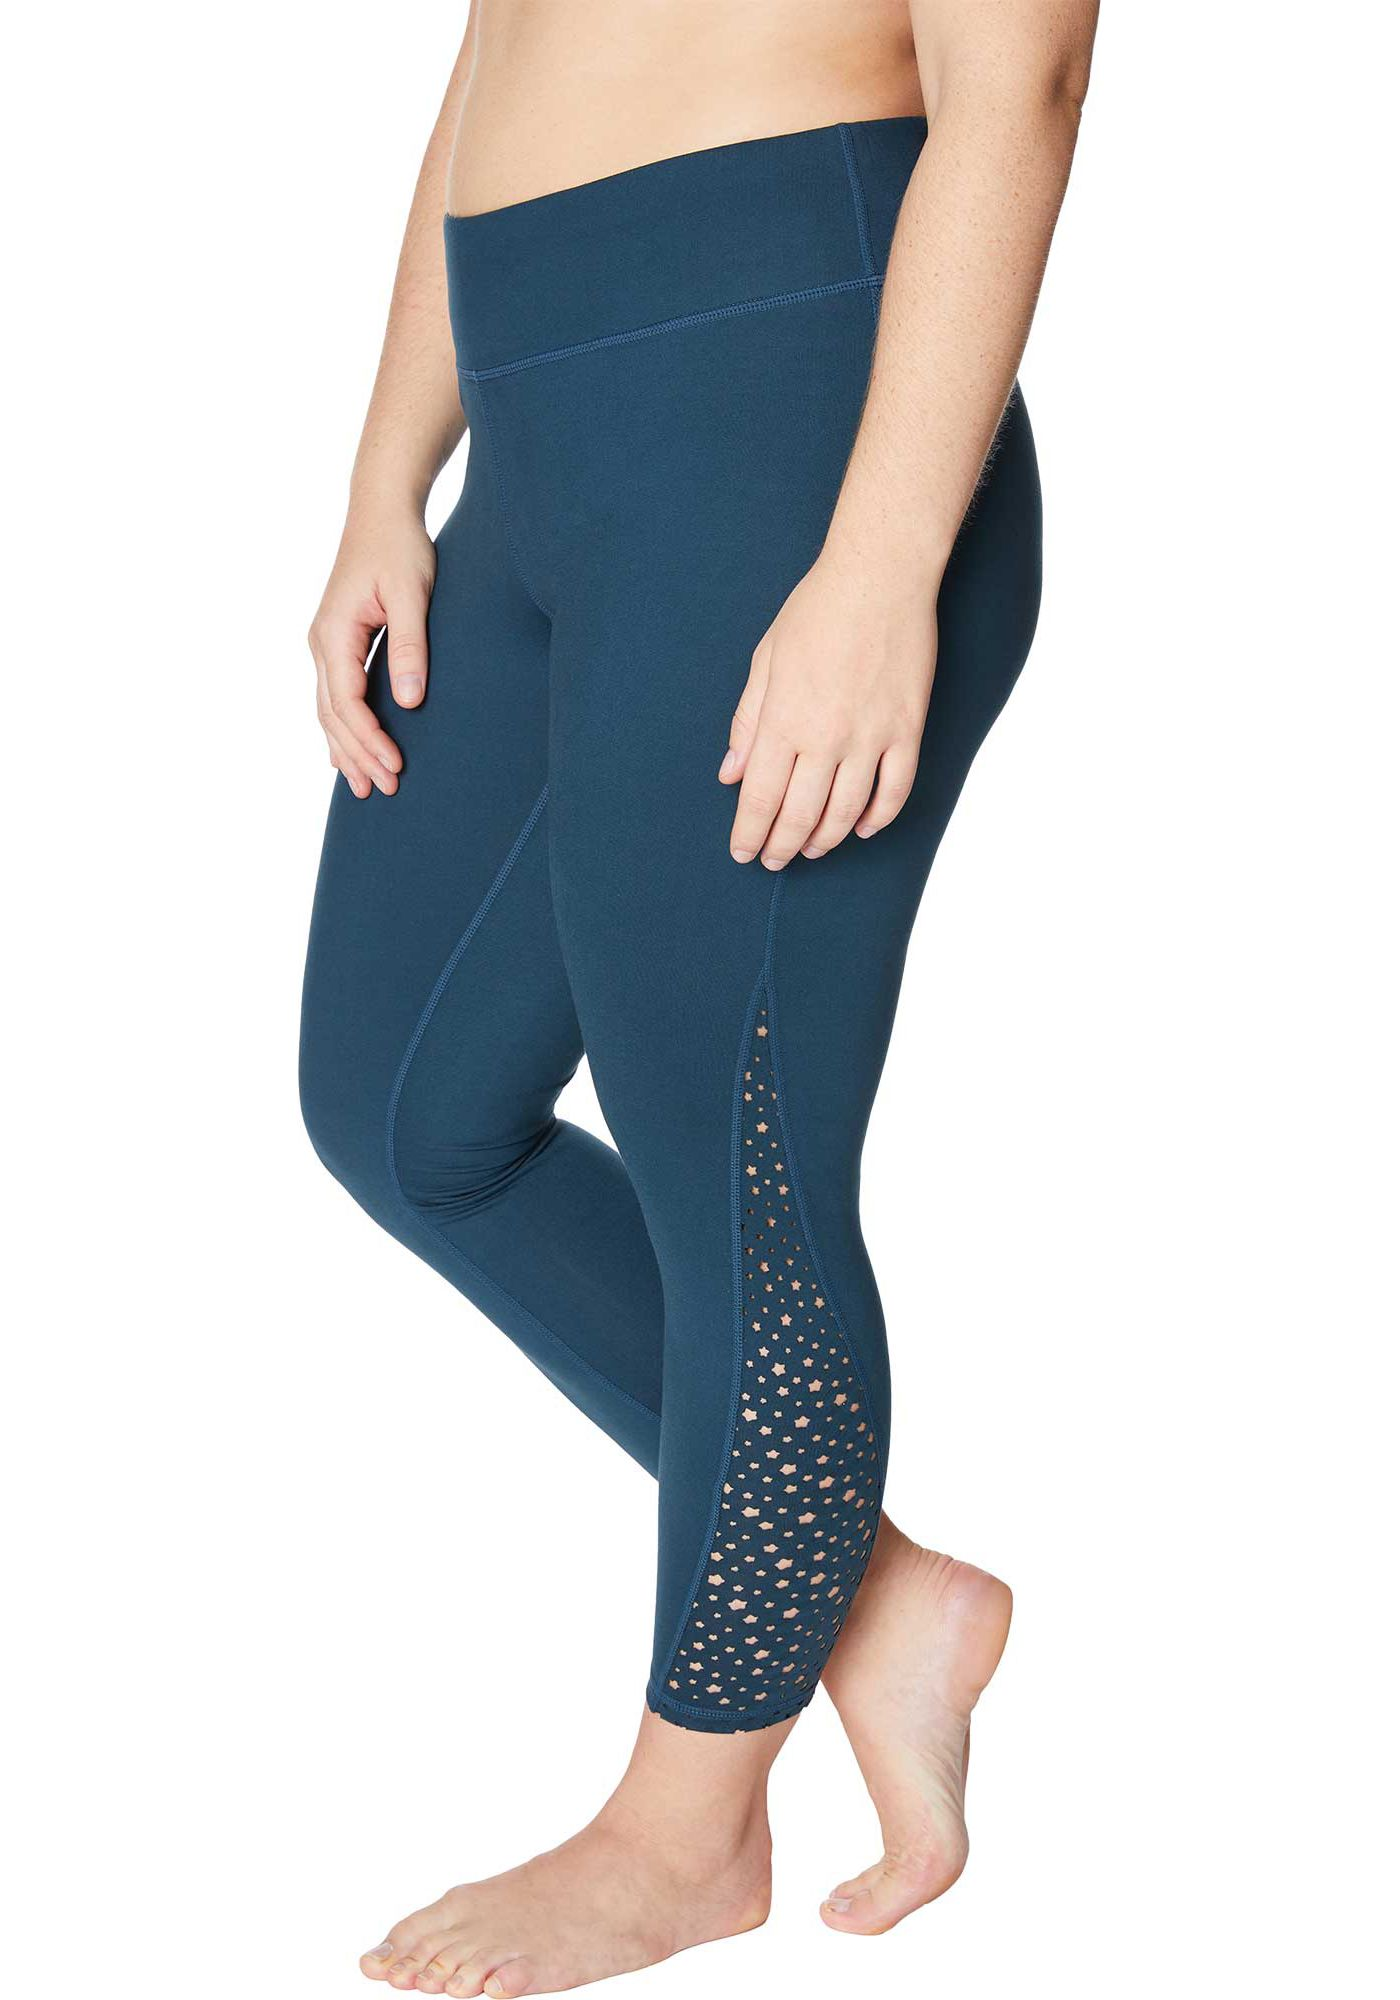 Betsey Johnson Women's Plus Size Laser Cut 7/8 Leggings